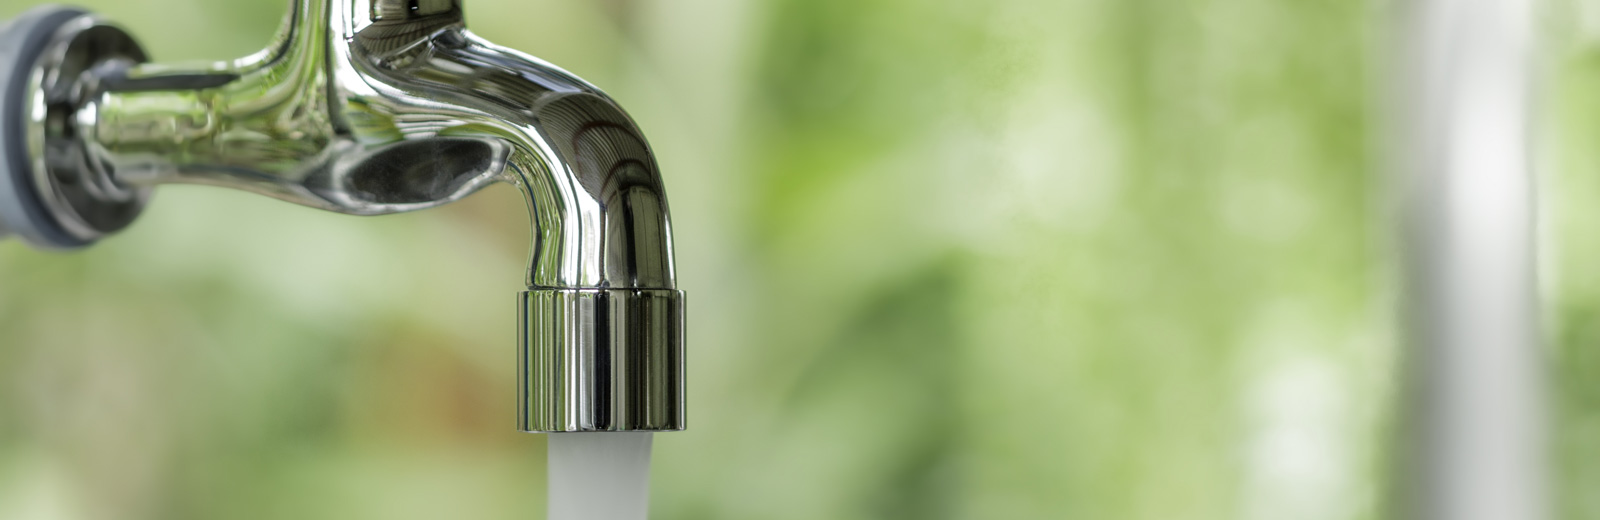 Quality drinking water from your tap.